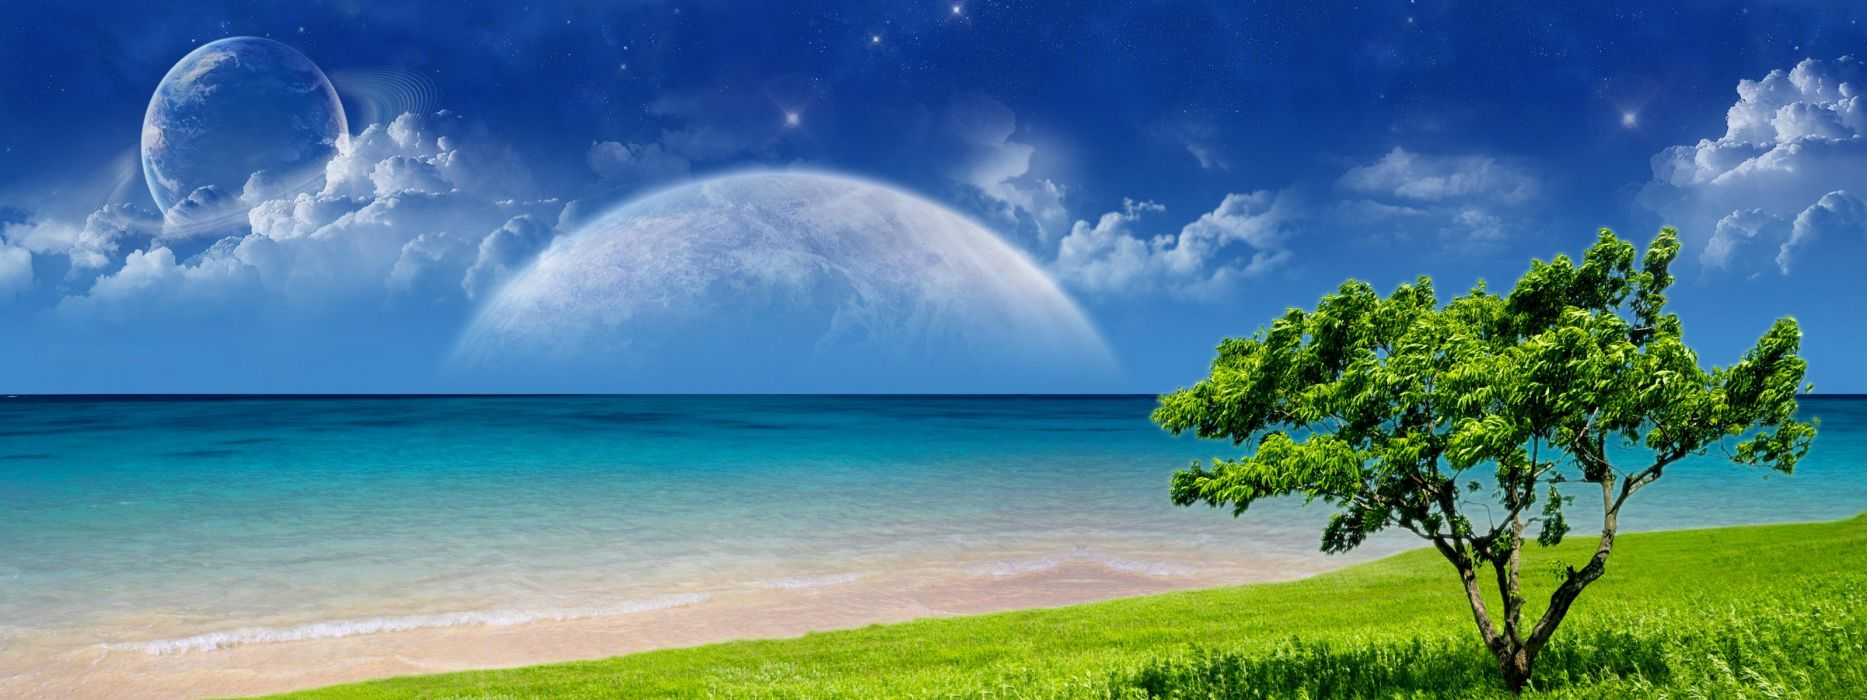 Multi Monitor Dual Screen cg digital art manip ocean sea sky planets sci fi mood clouds wallpaper